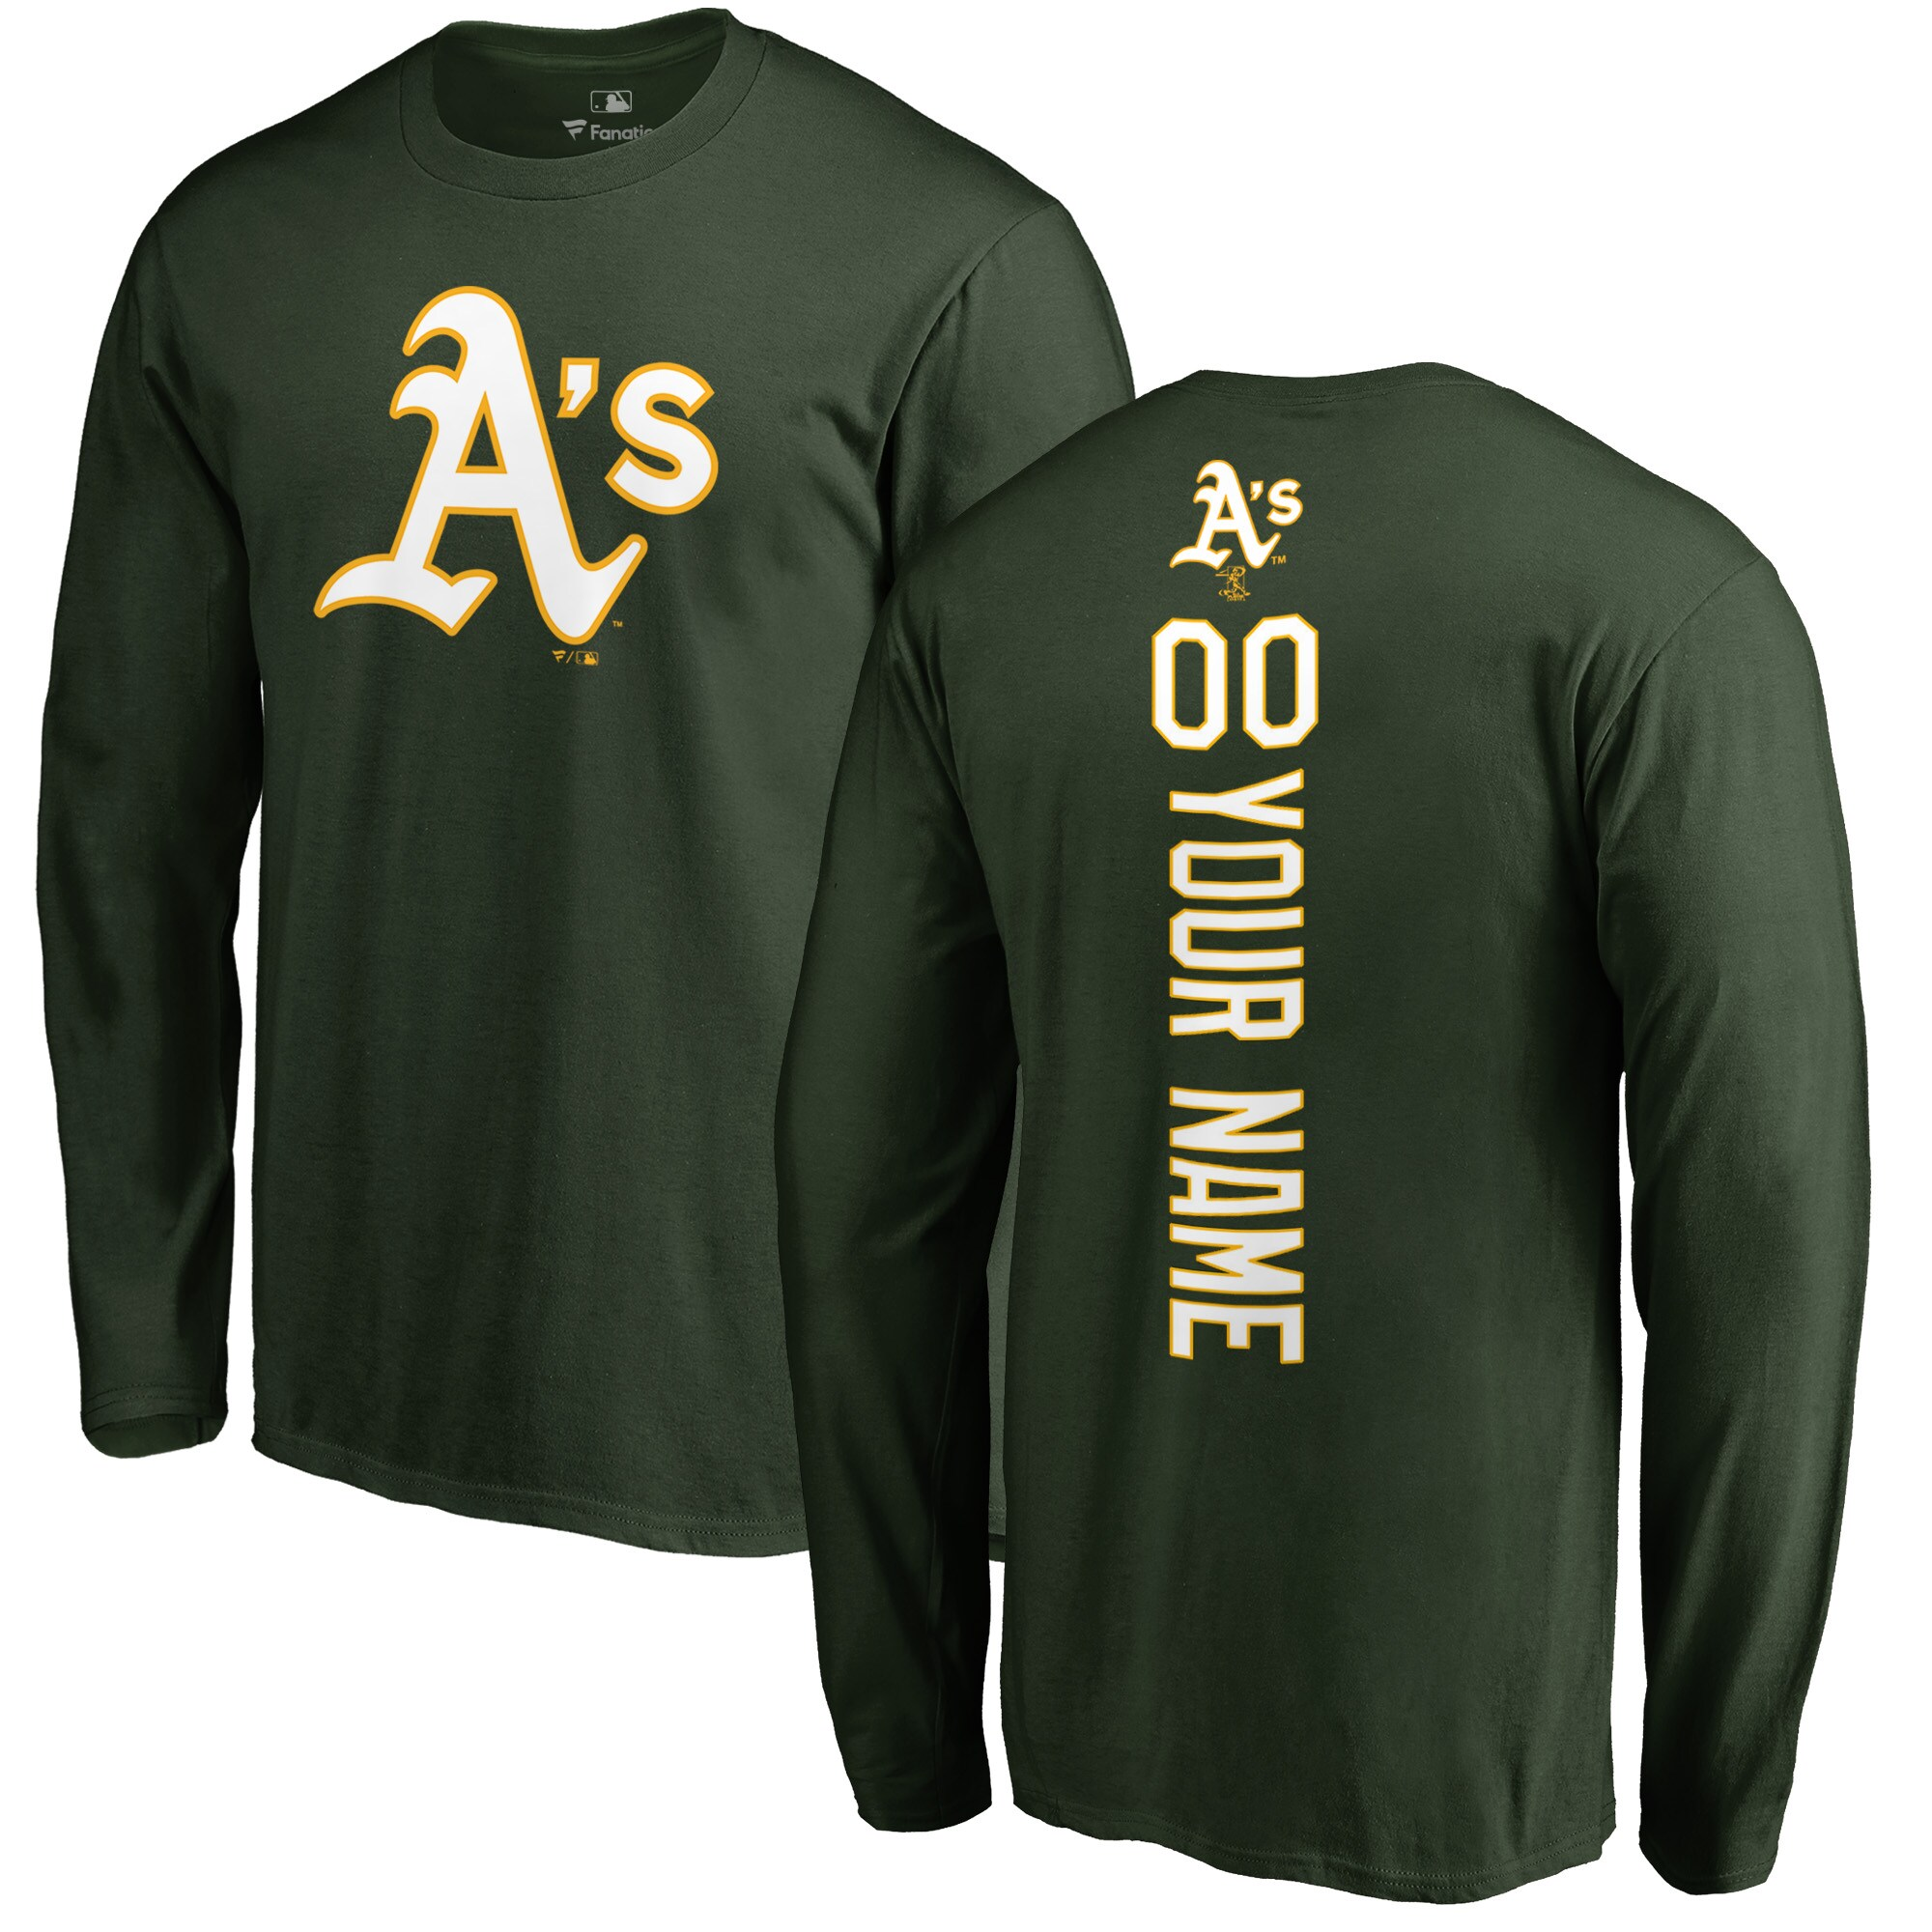 Oakland Athletics Fanatics Branded Personalized Playmaker Long Sleeve T-Shirt - Green